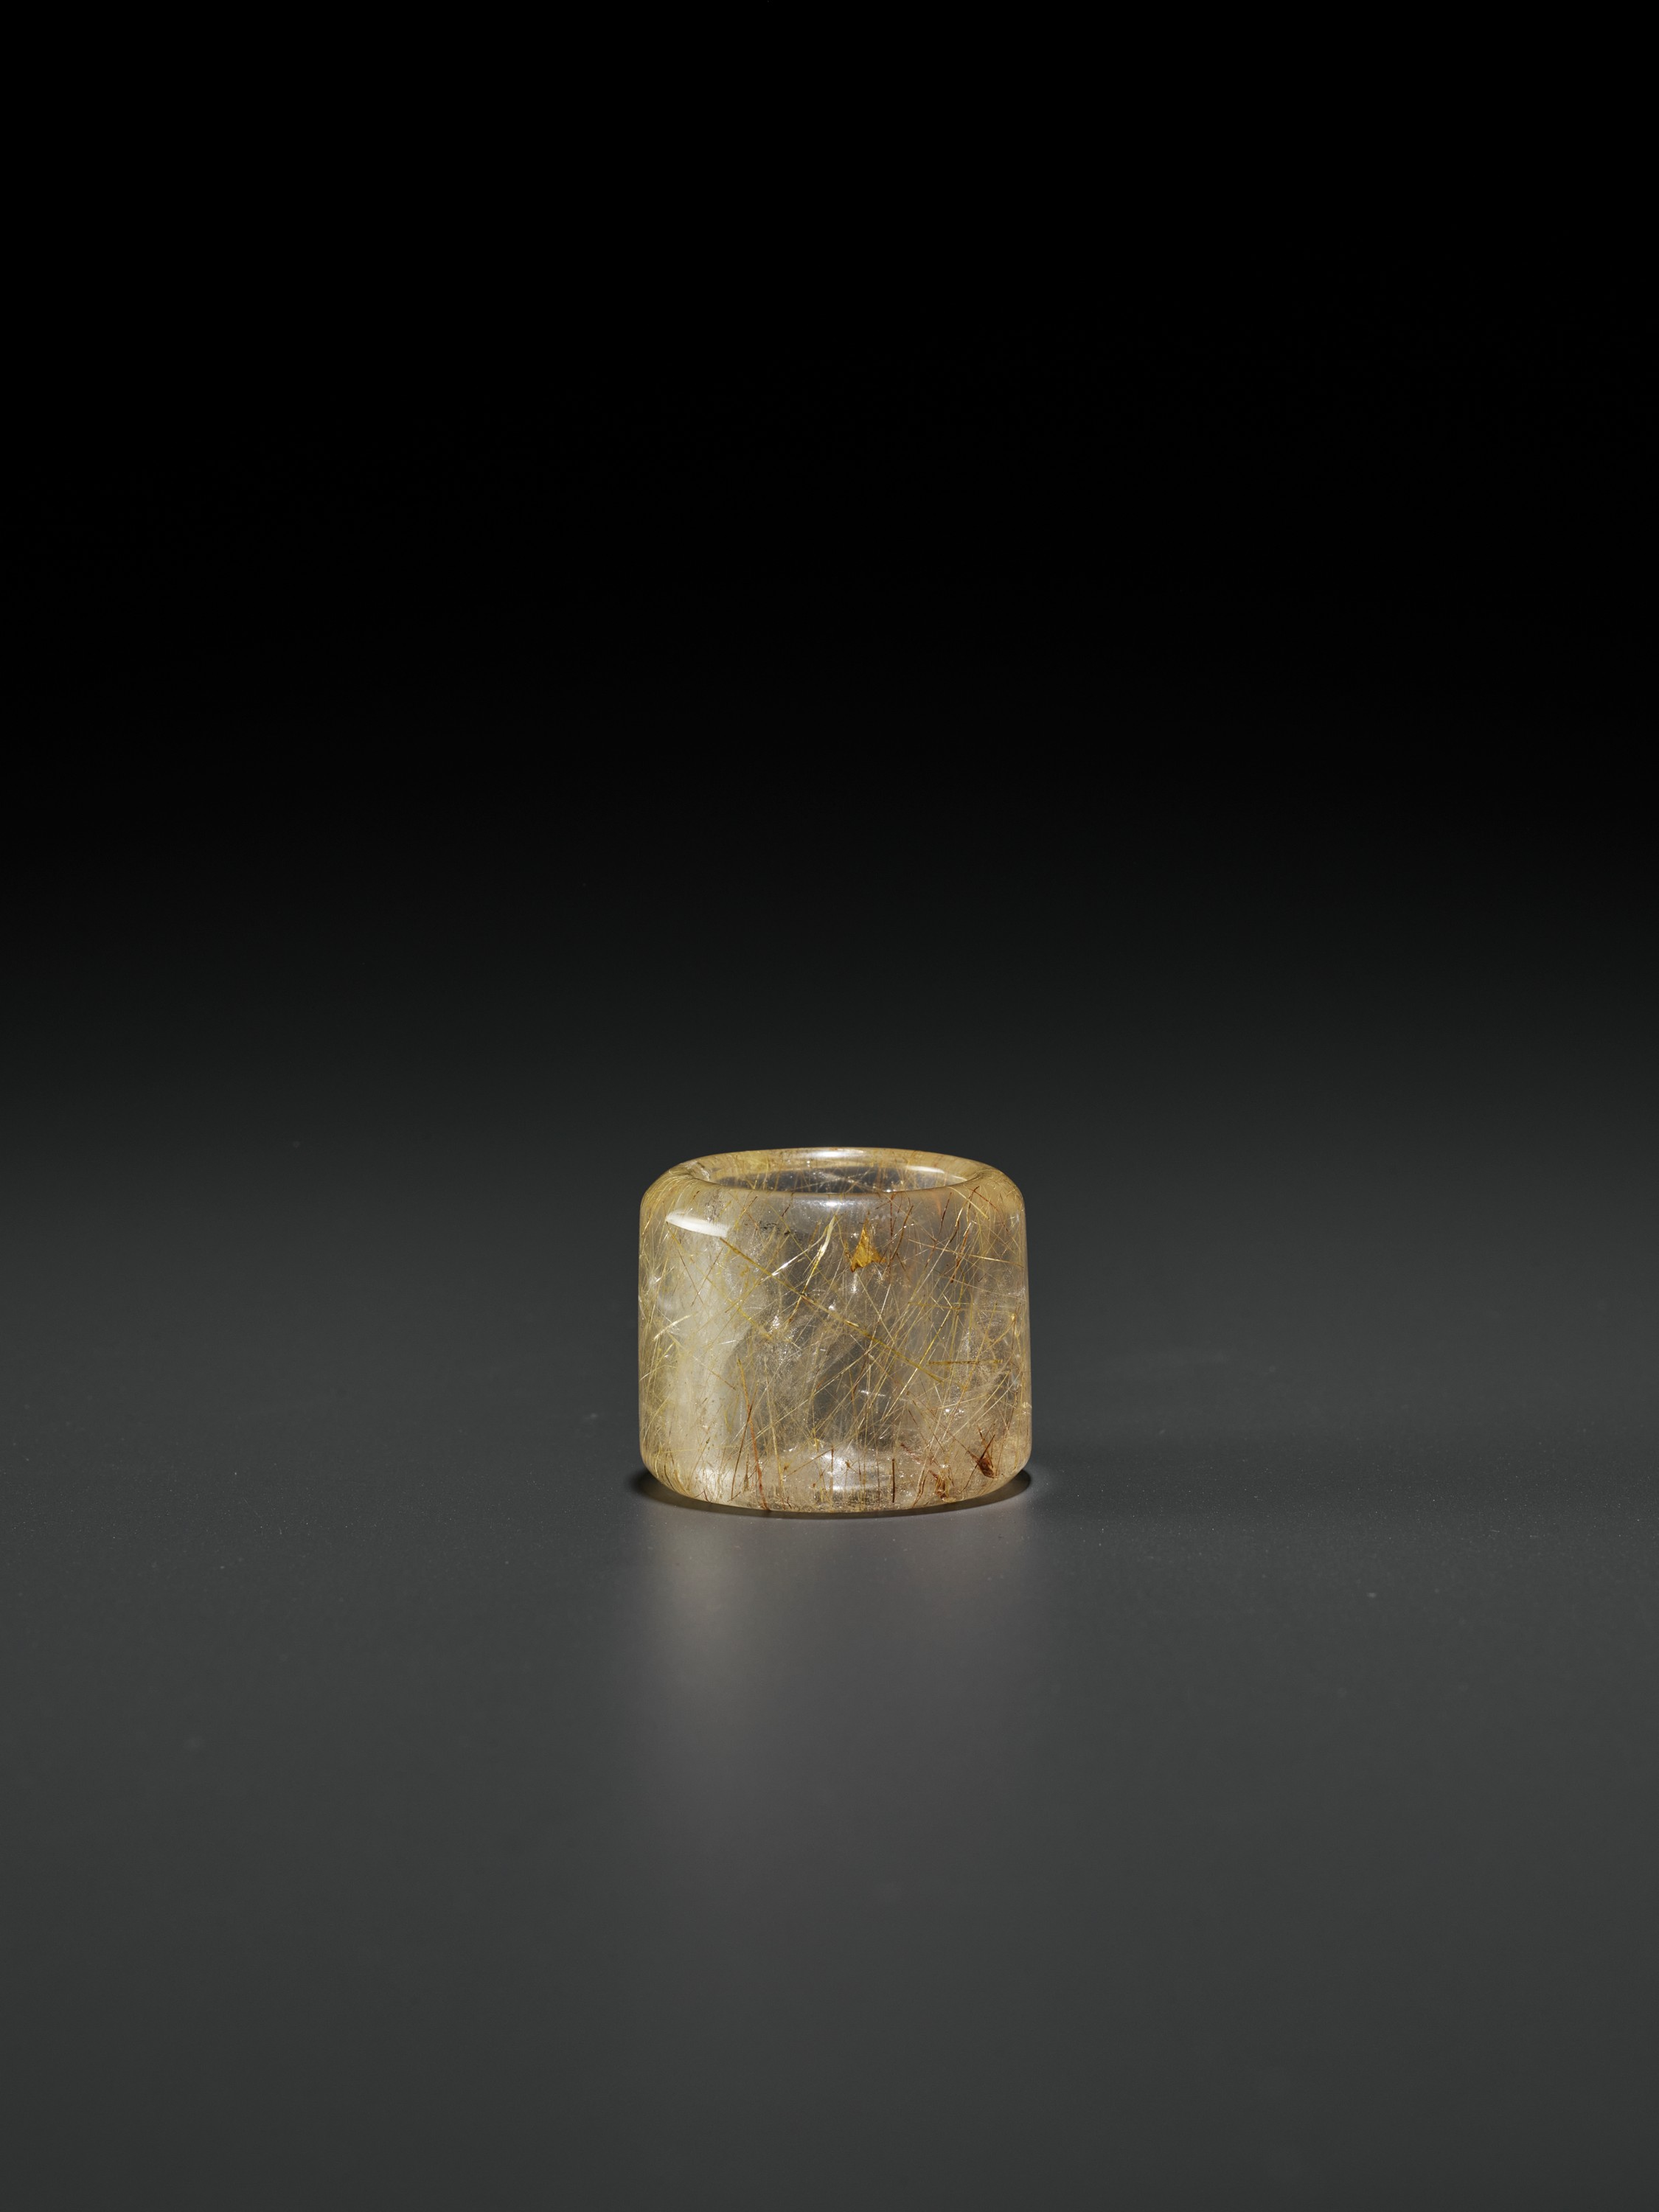 A 'HAIR' CRYSTAL ARCHER'S RING, QING DYNASTY - Image 8 of 9